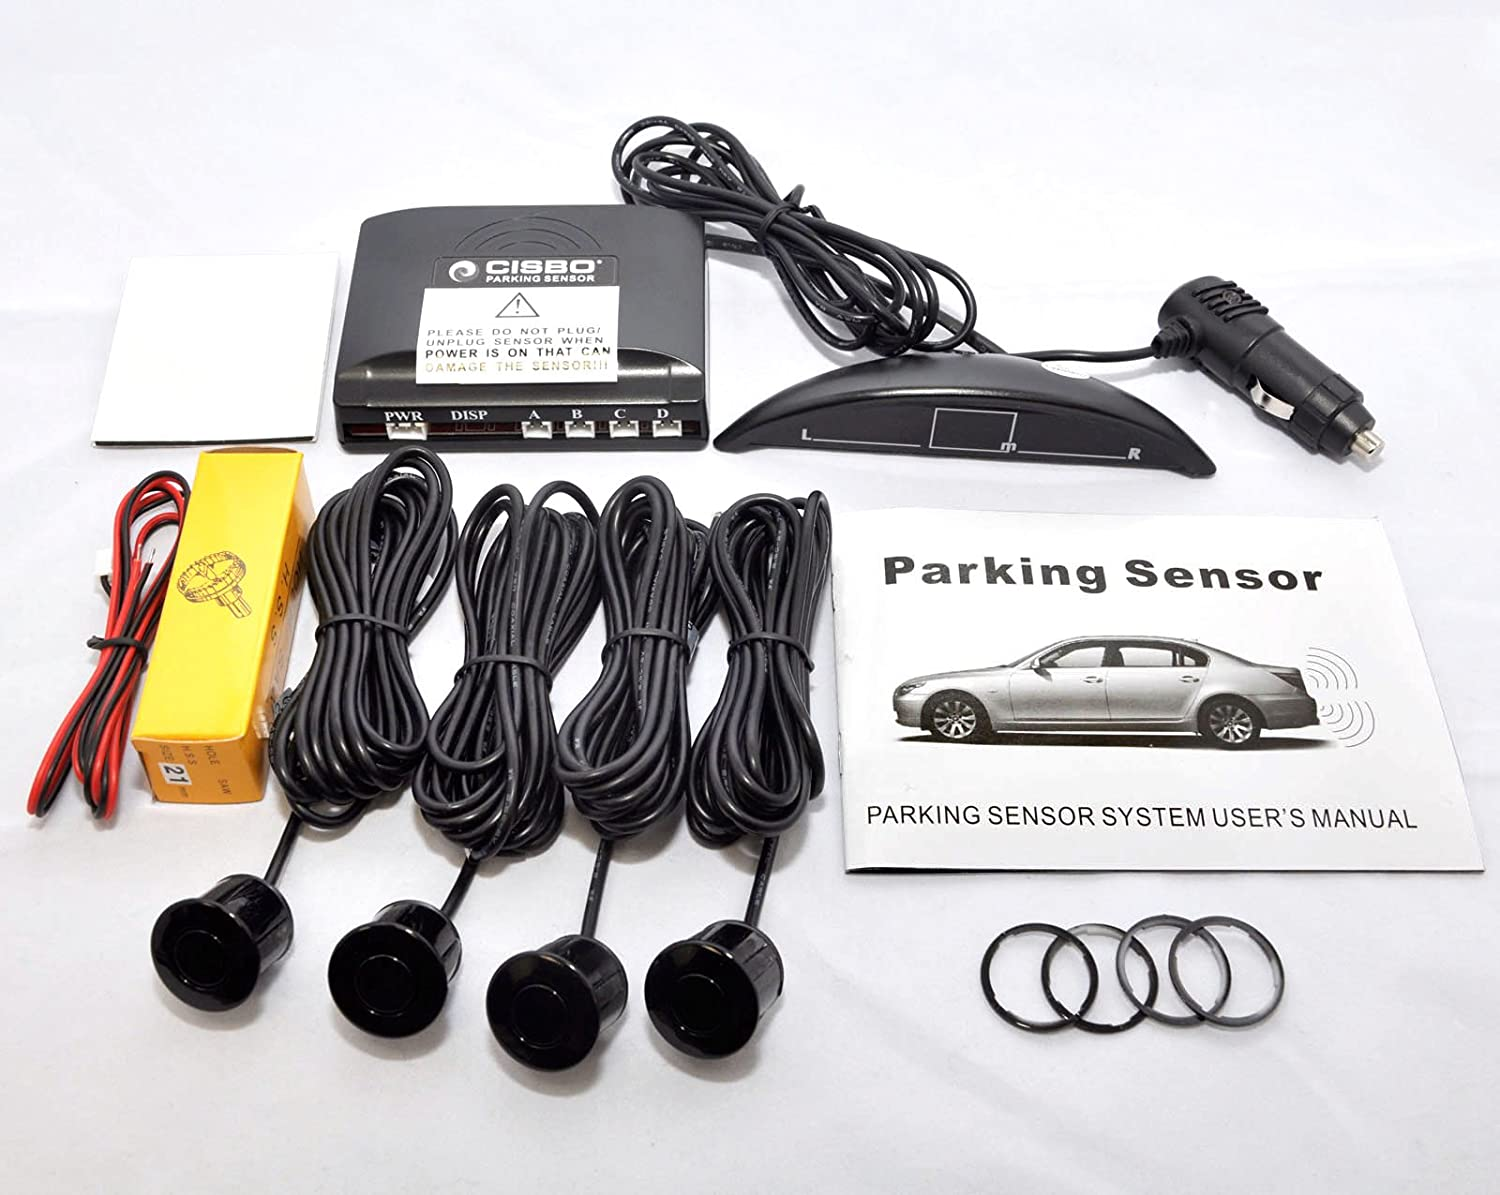 CISBO SB323 Wireless Car reversing Parking 4 Rear sensors with LED Display, Pearl White Cisbo Limited